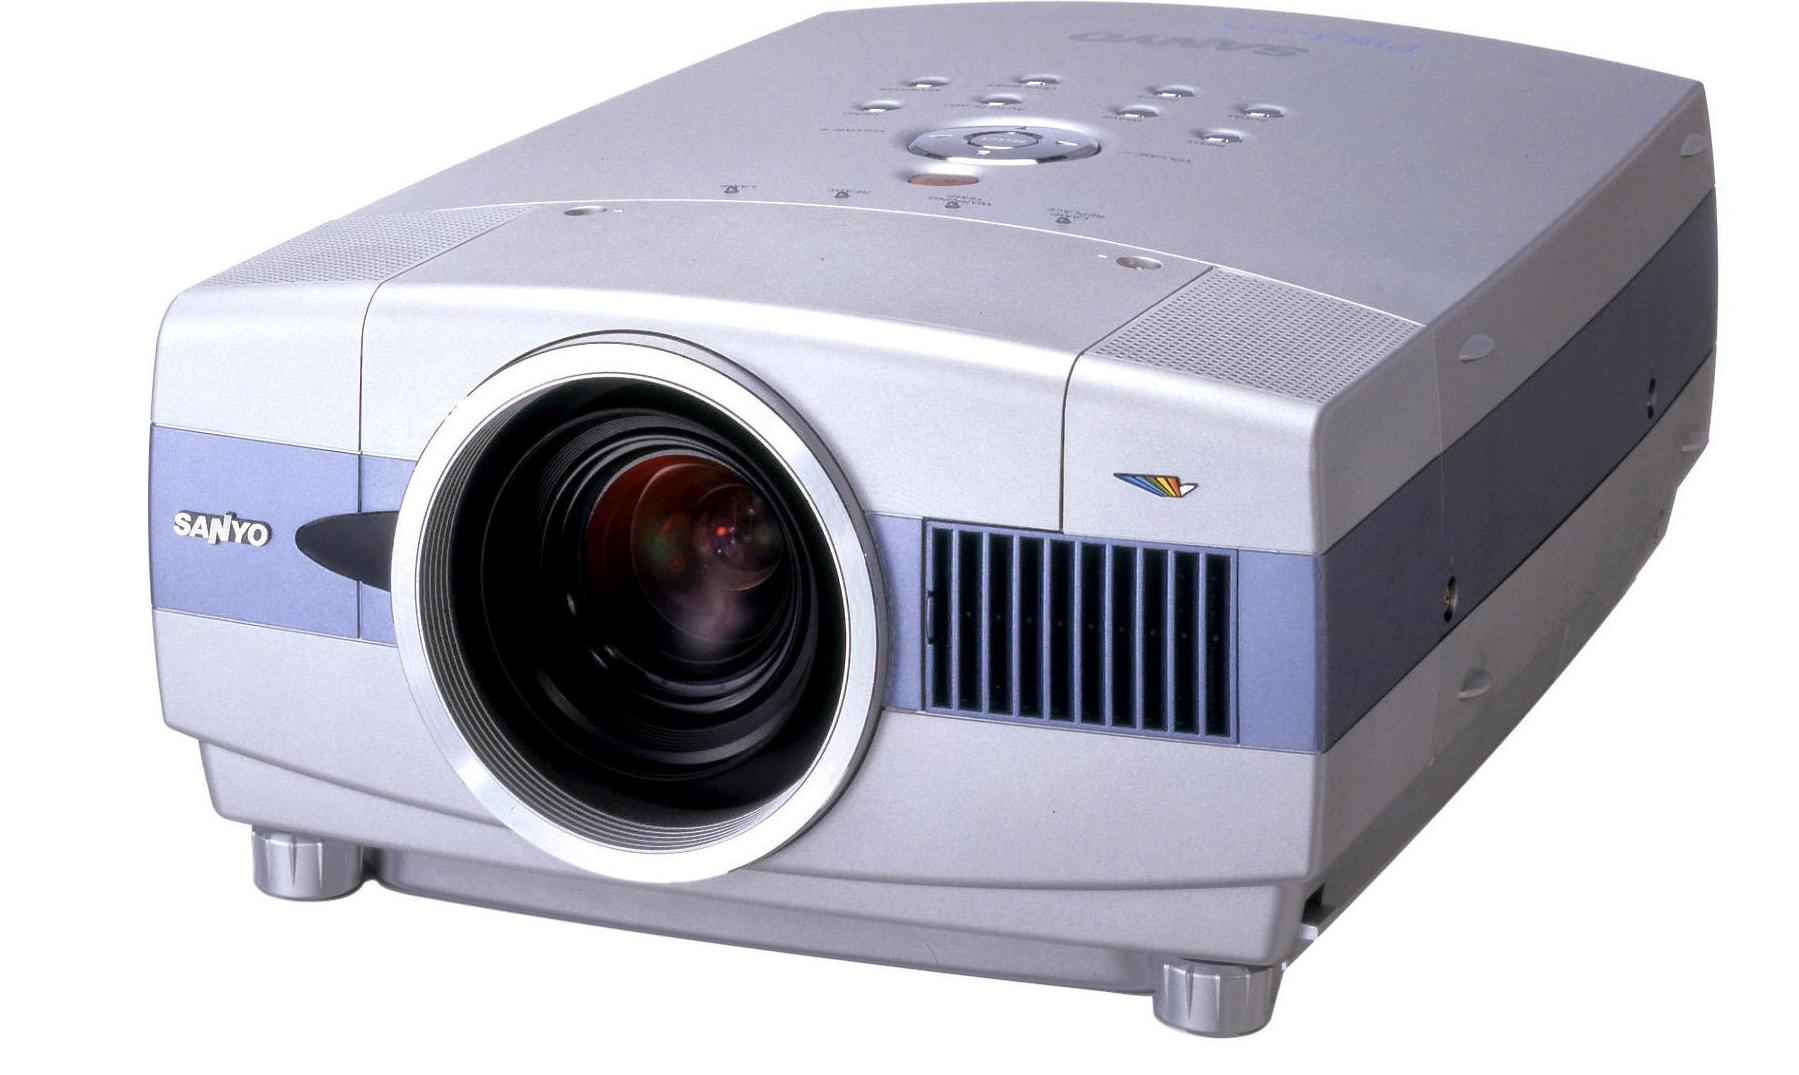 Mitsubishi Projector Lamp Reset For SAGEM MP220X